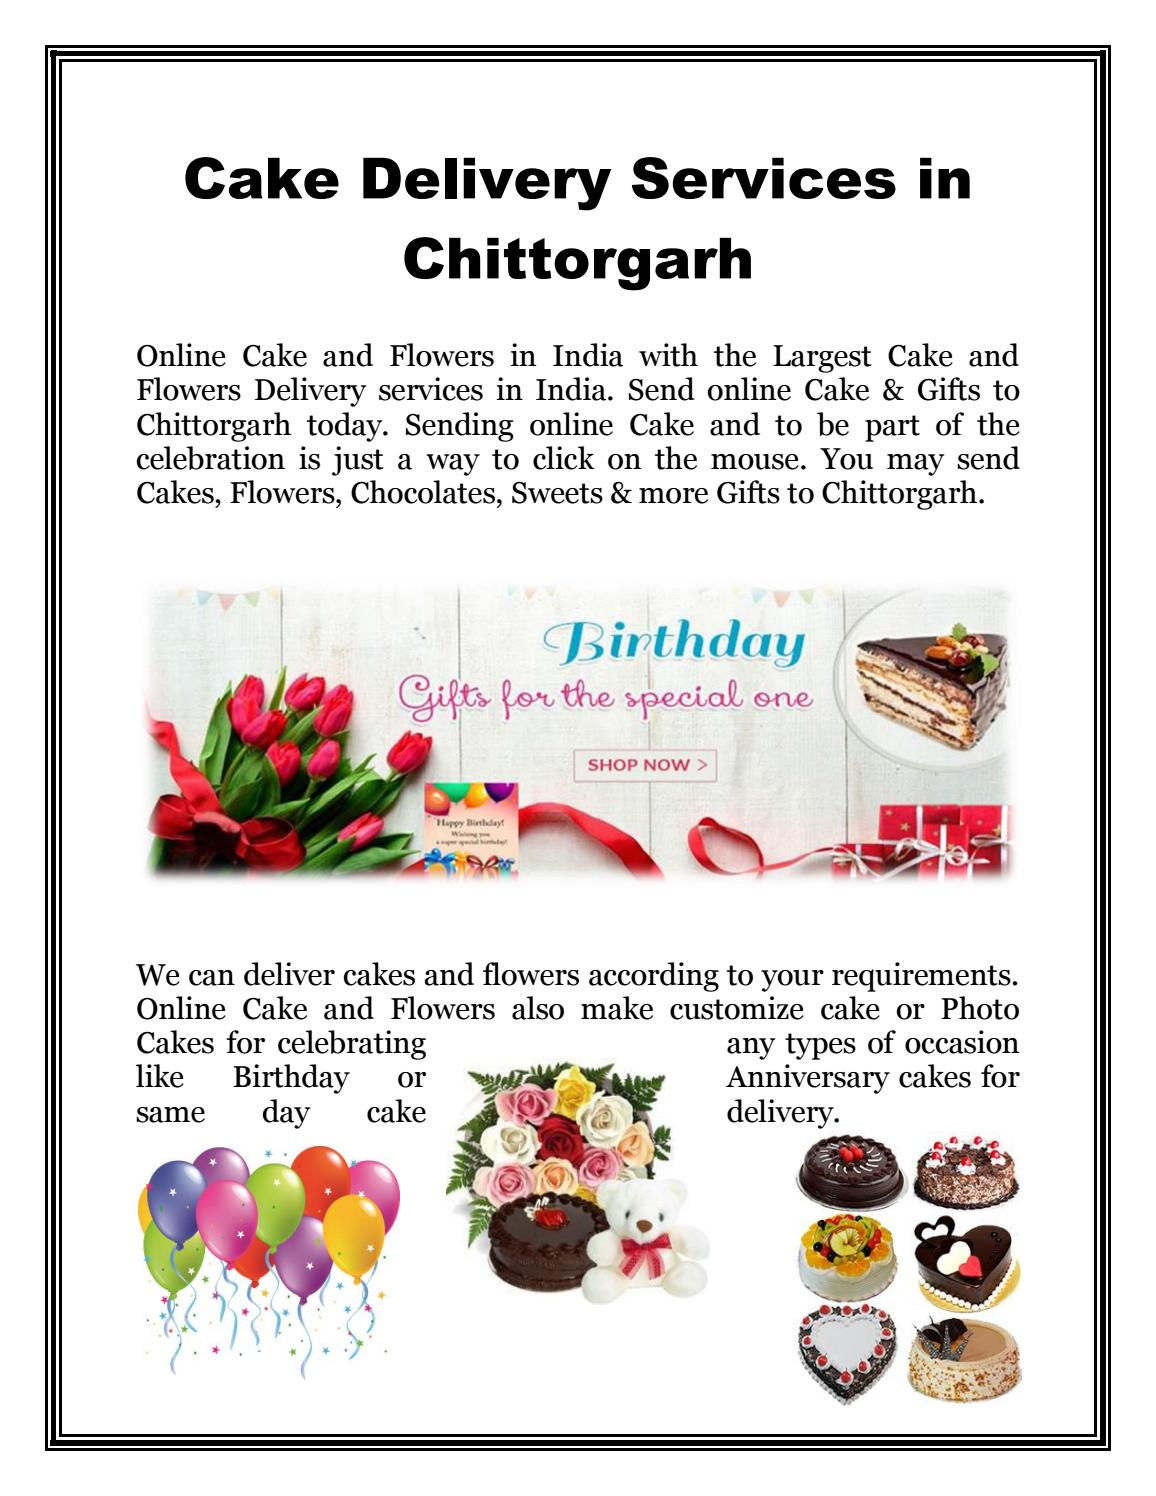 Cake Delivery Services In Chittorgarh By Onlinecakeandflowers Issuu